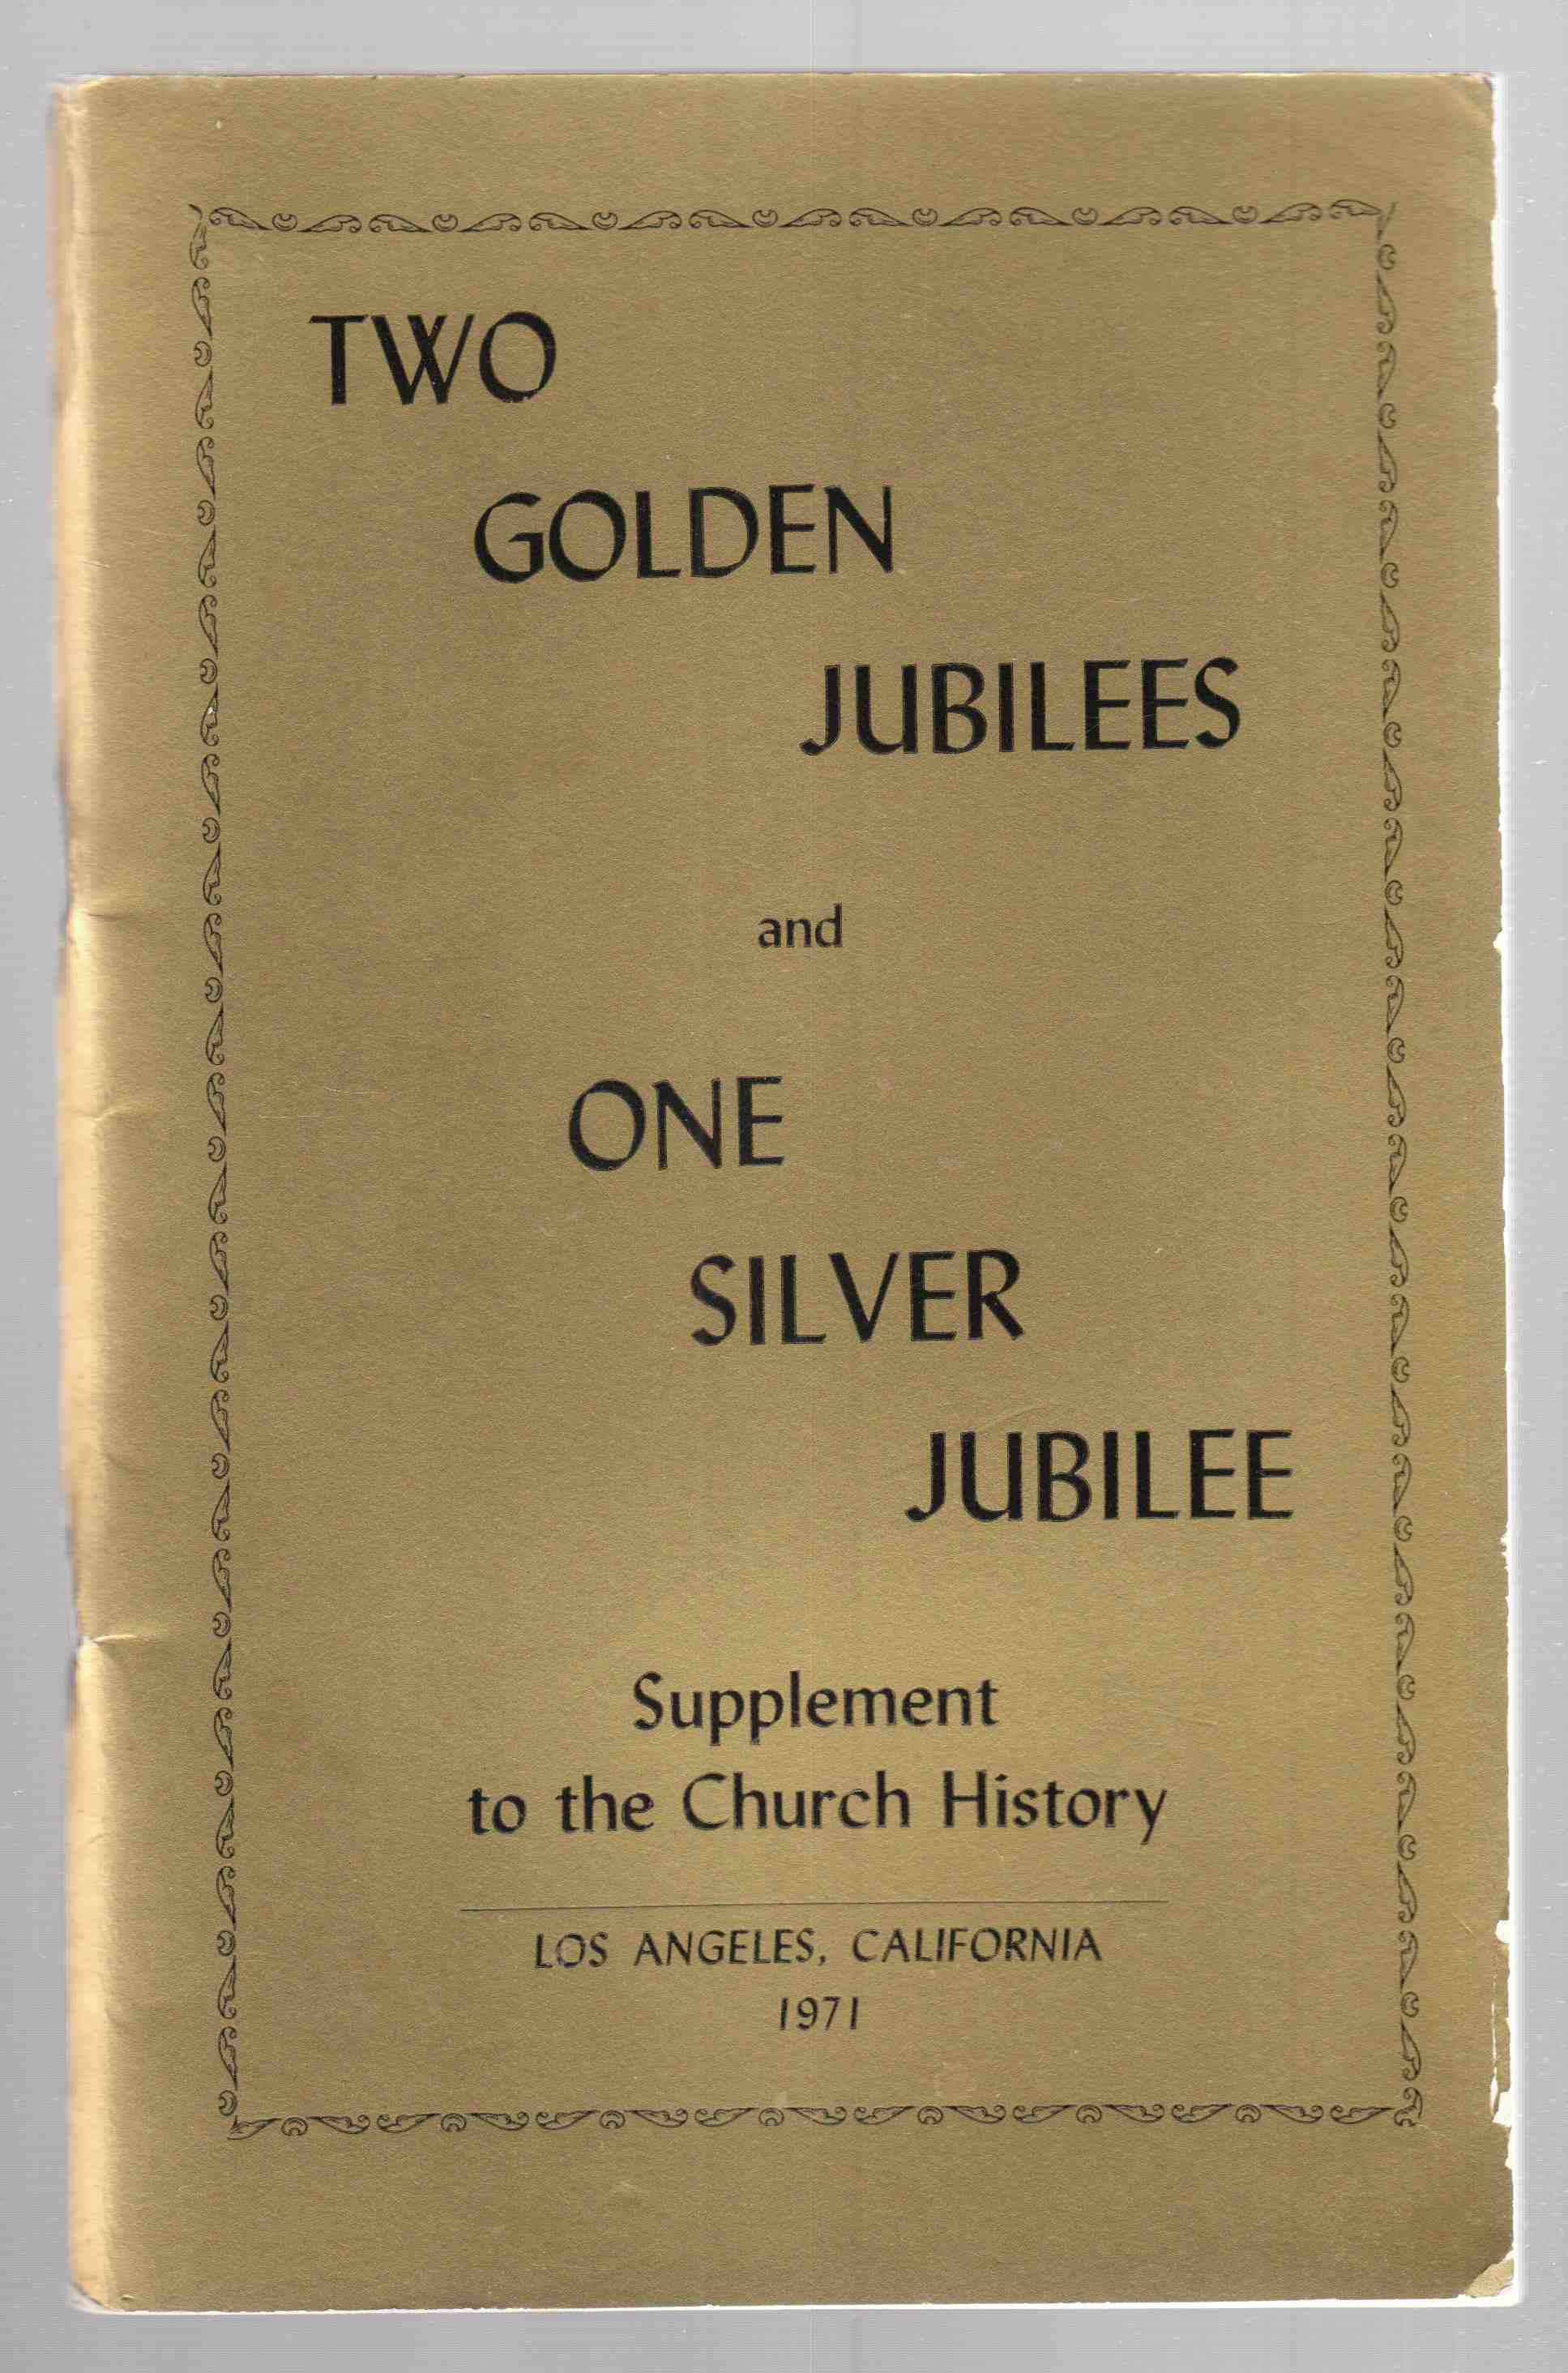 Image for Two Golden Jubilees and One Silver Jubilee Supplement to the Church History